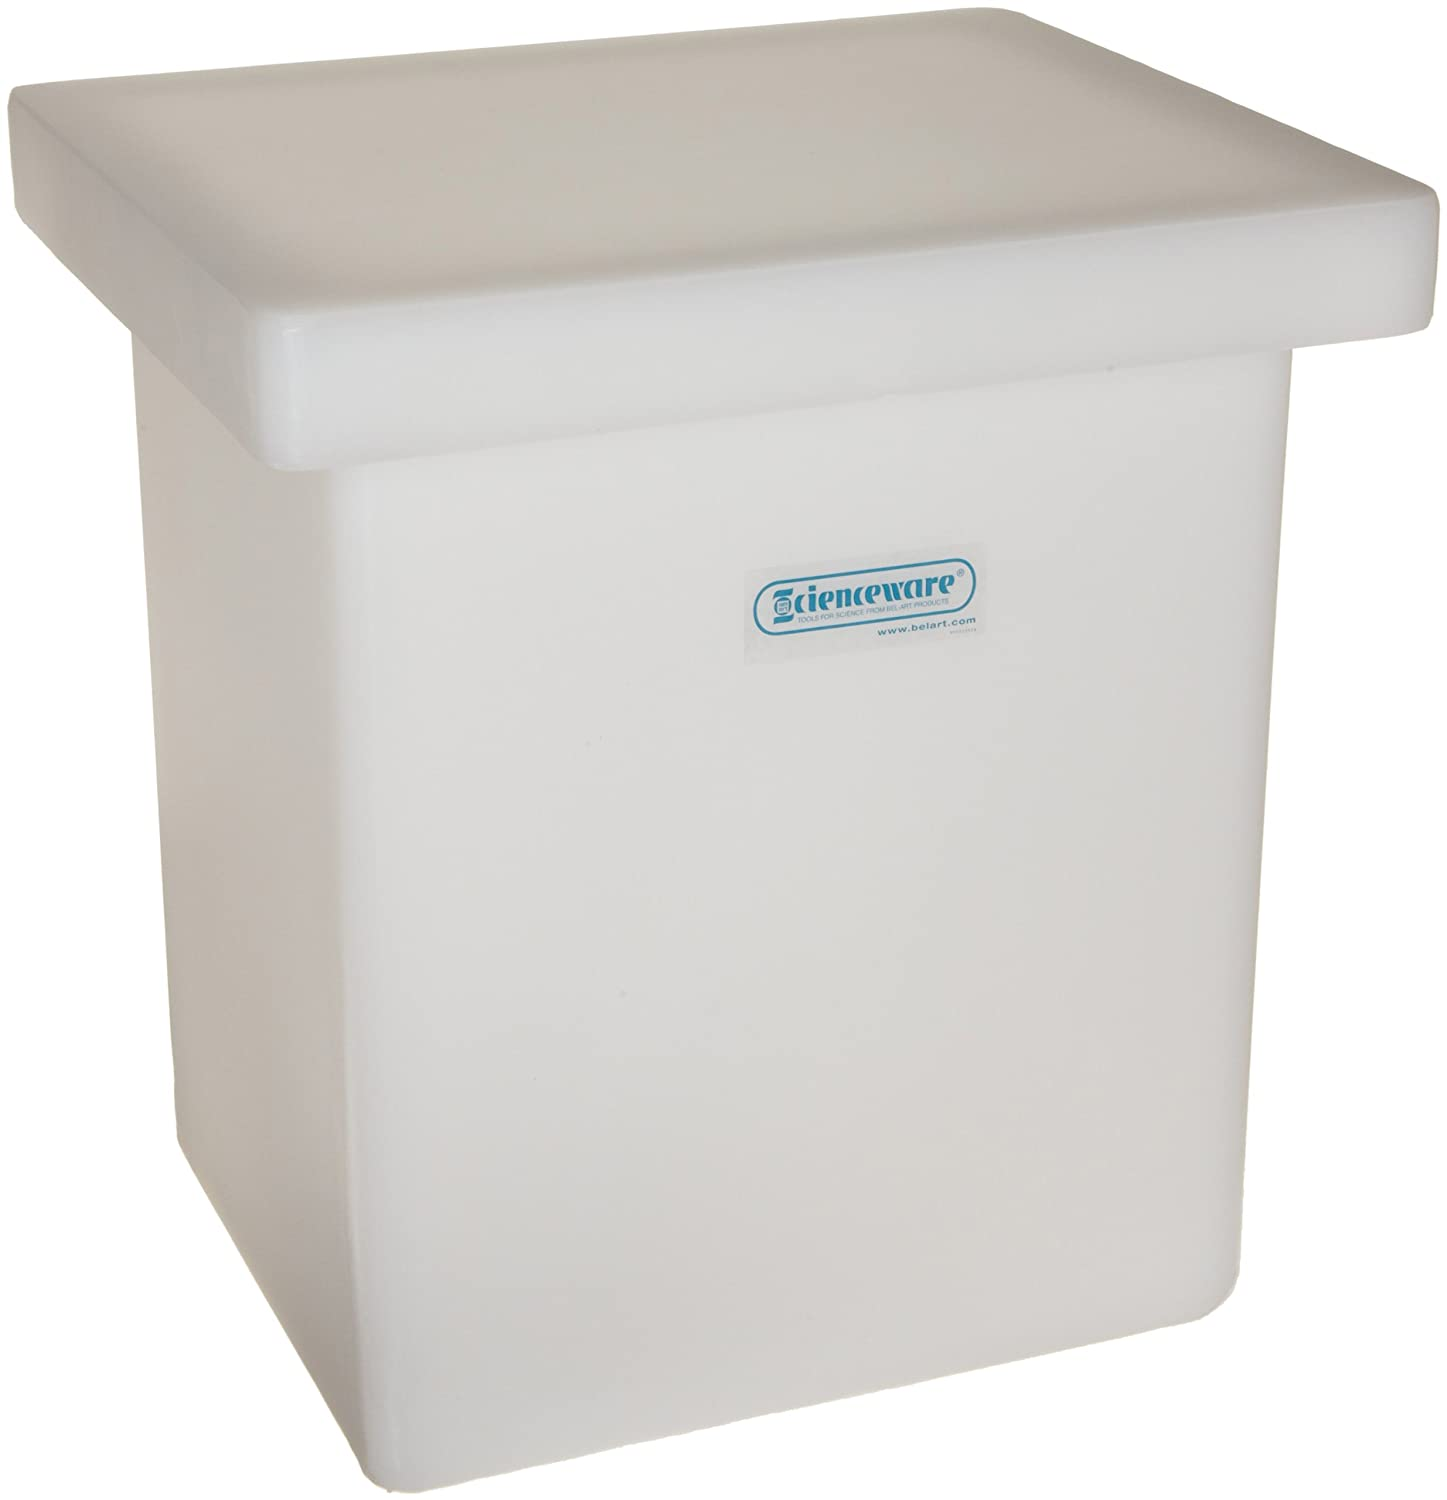 Without Faucet; 15.25 x 12 x 19 in. Bel-Art Heavy Duty Polyethylene Rectangular Tank with Top Flanges H34085-0000